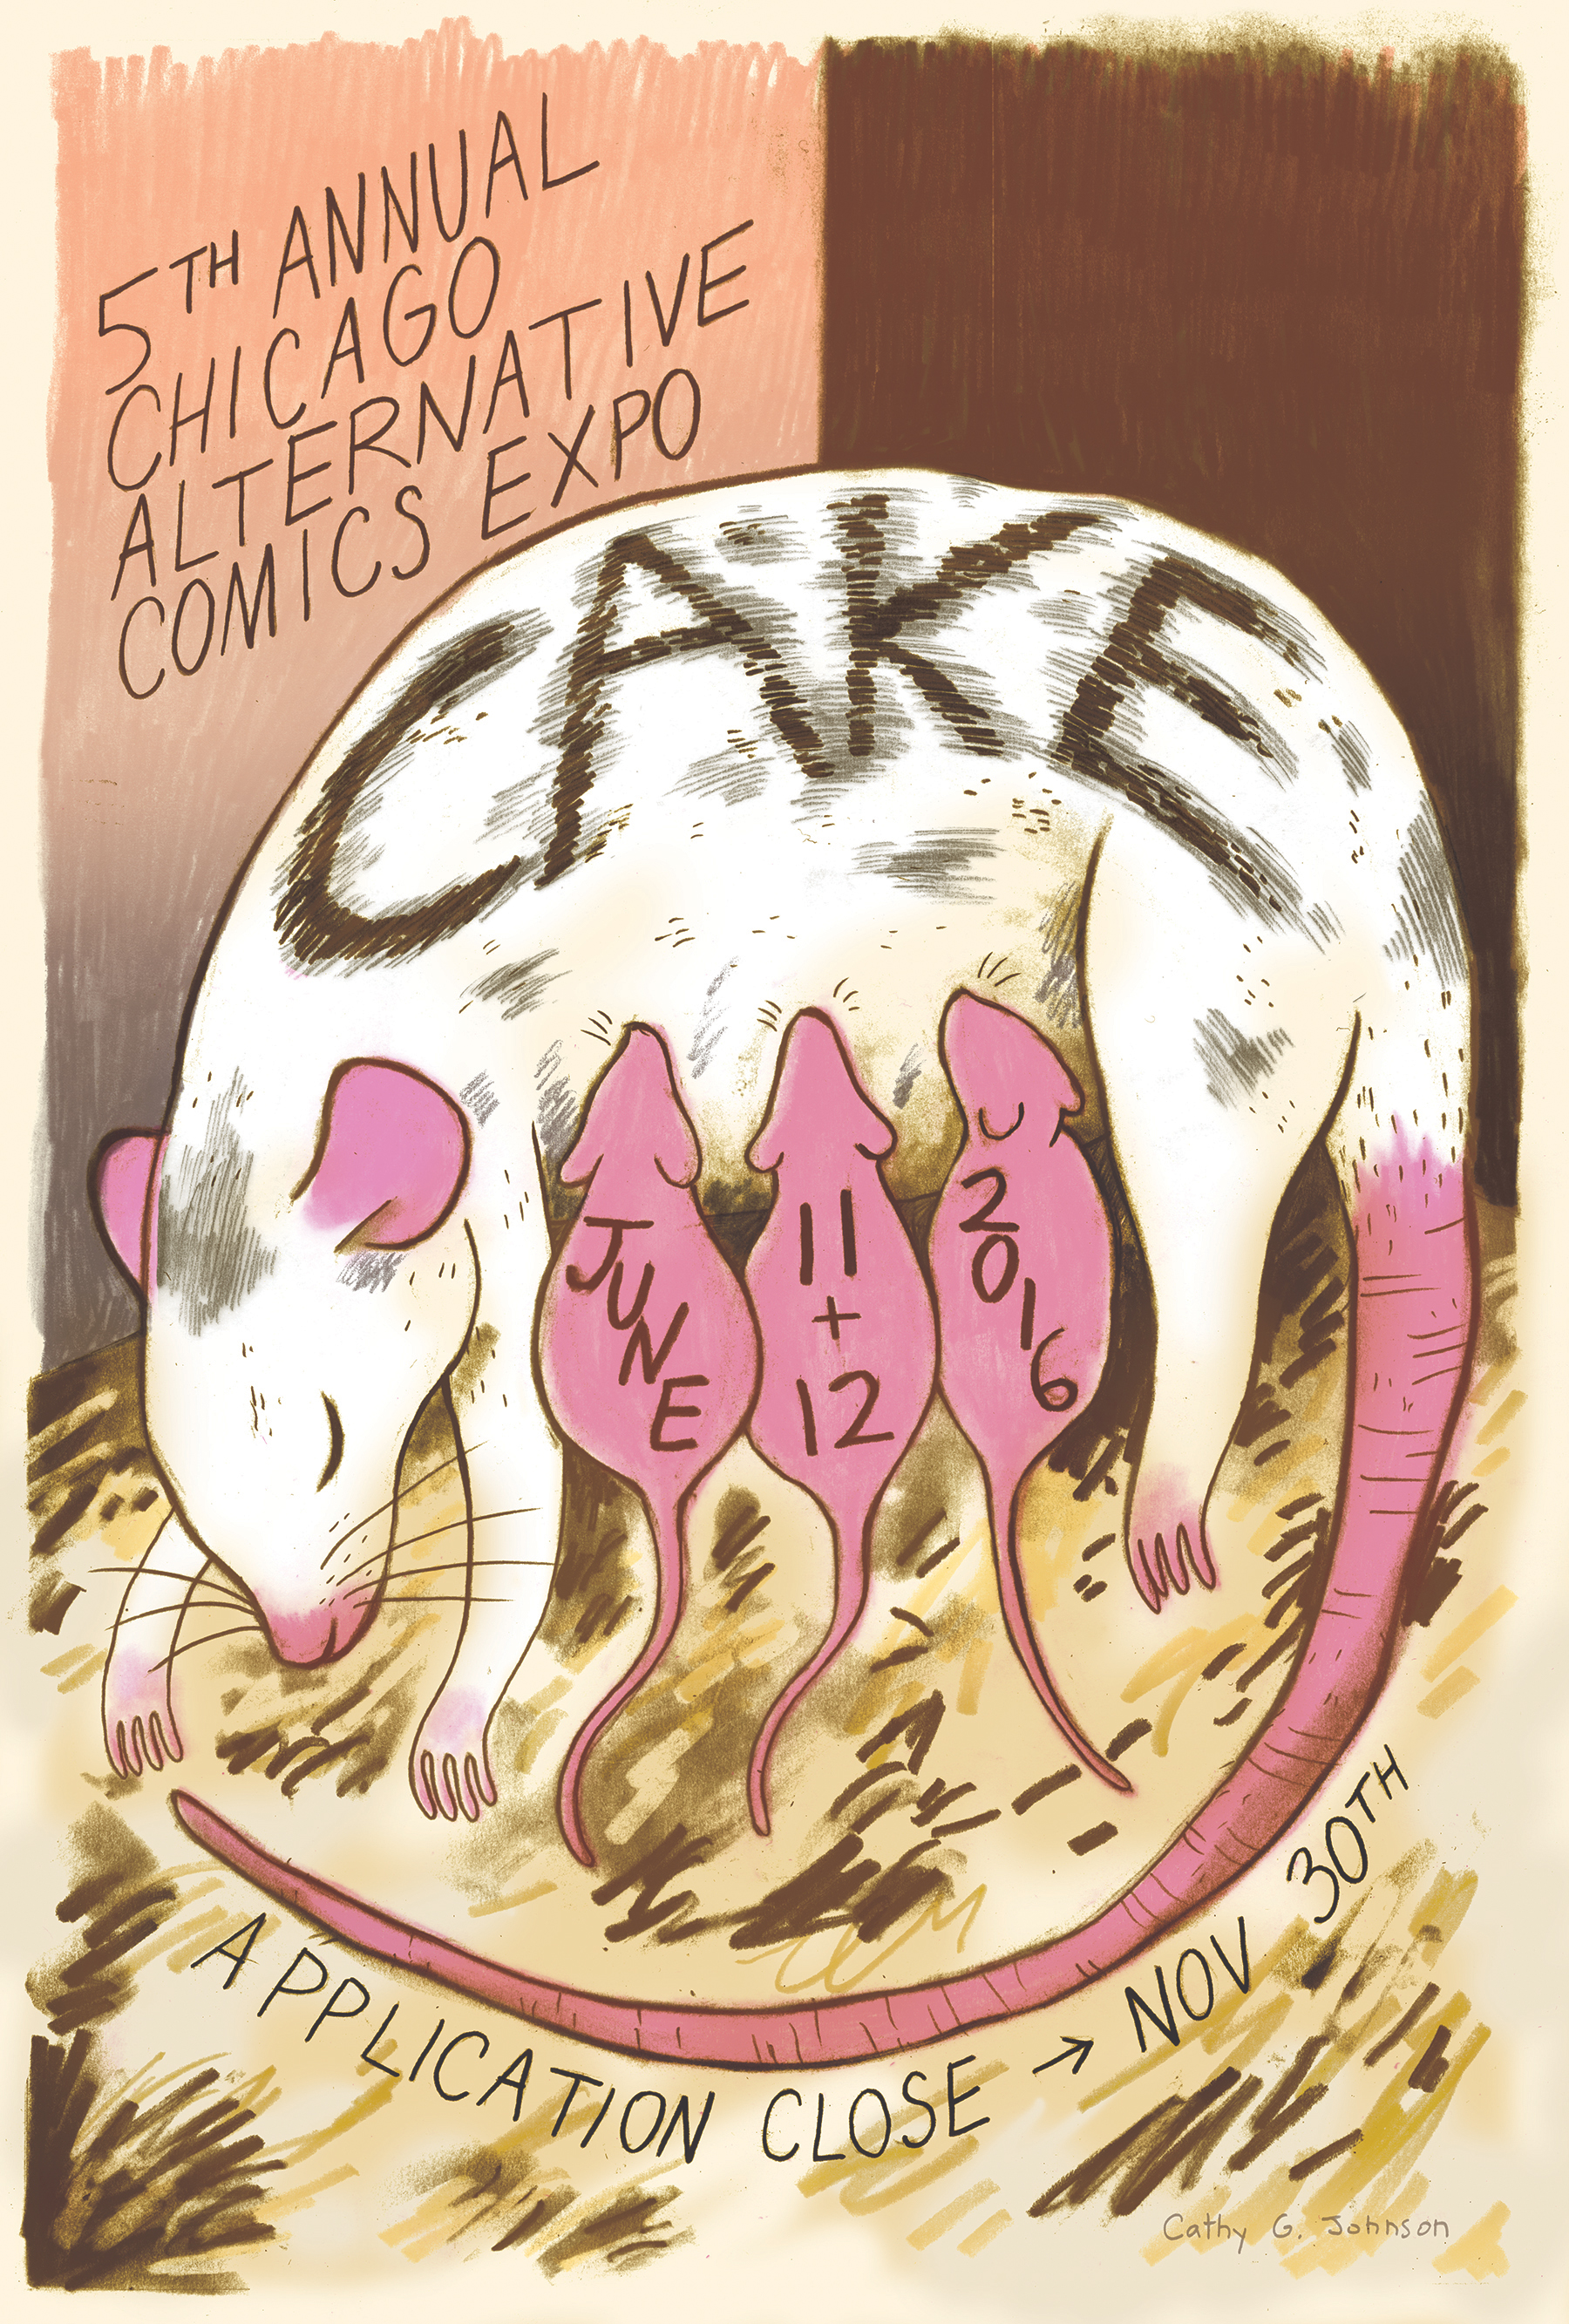 Poster / Chicago Alternative Comics Expo 2016